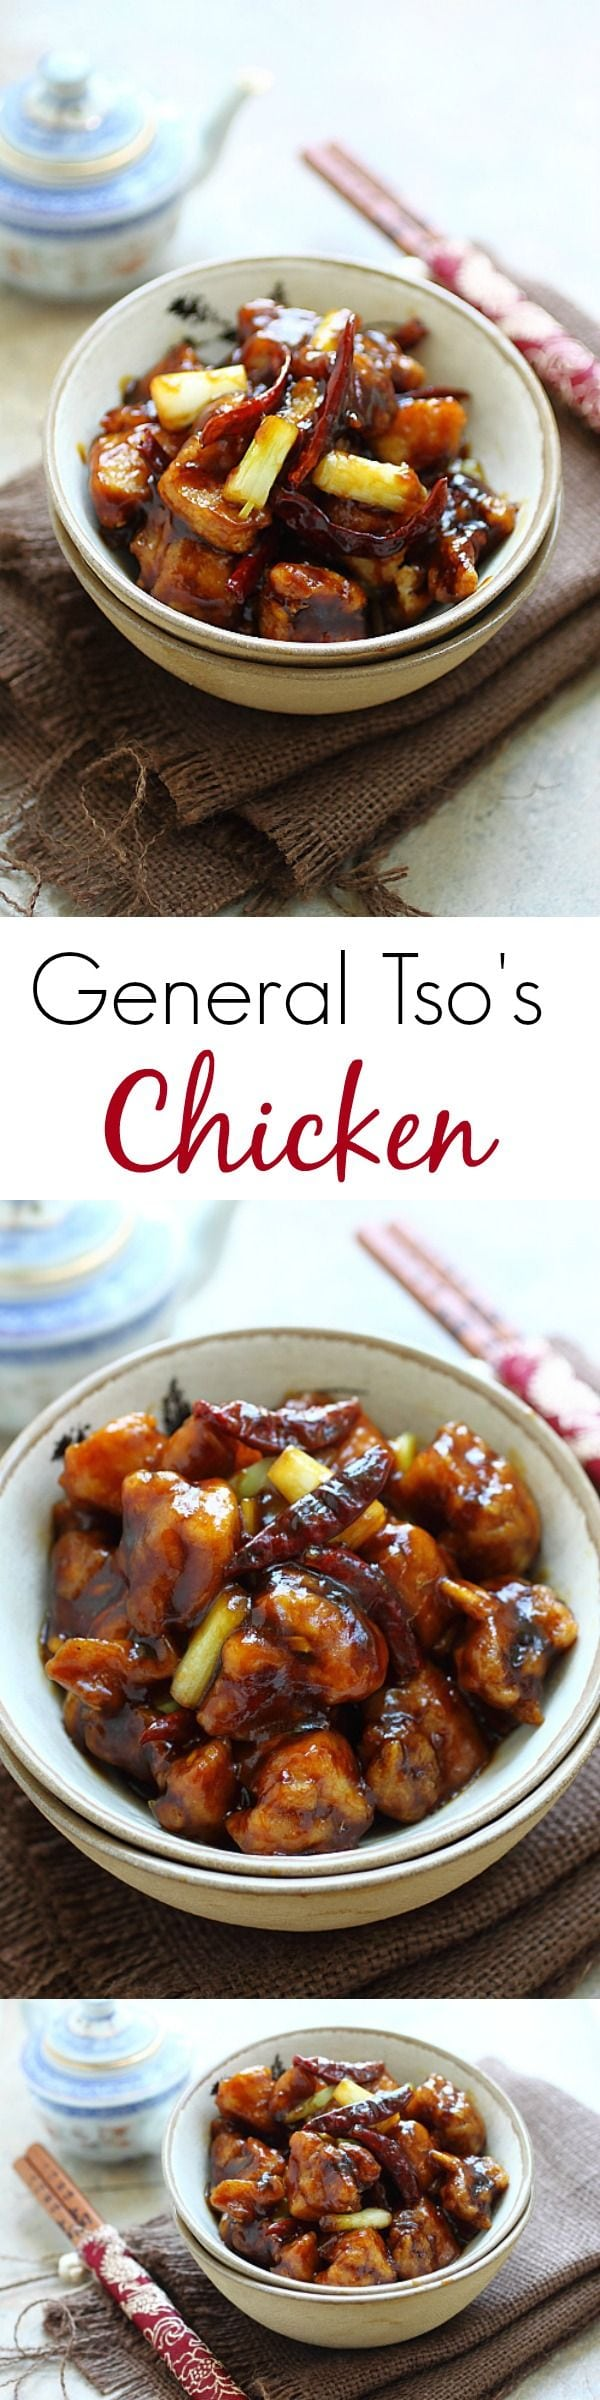 General Tso's chicken - BEST and easiest General Tso's Chicken ever. SO delicious and much better and healthier than Chinese takeout! | rasamalaysia.com